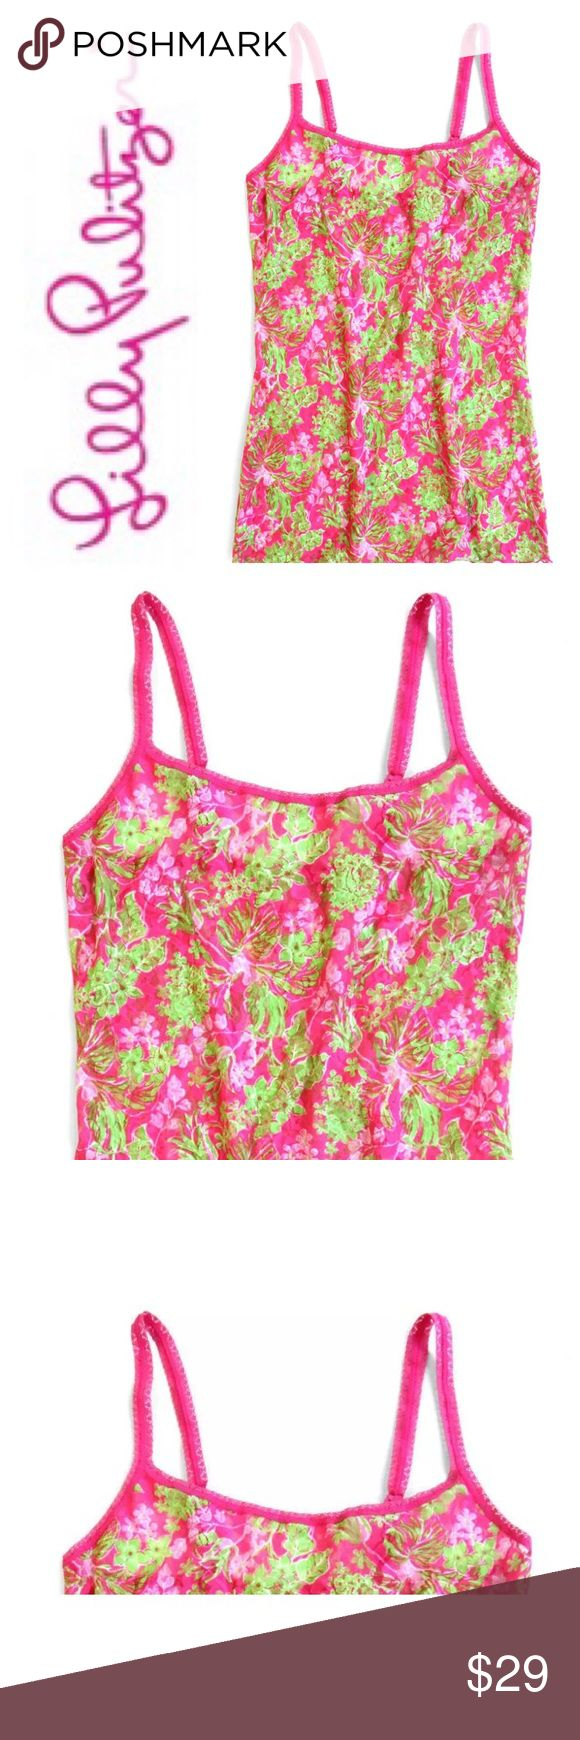 Lilly Pulitzer Unlined Camisole Hanky Panky XS Lilly Pulitzer Unlined Camisole Hanky Panky XS This brightly colored camisole is inspired by Lily Pultizer's colorful floral print styles that she started in the late 50's and early 60's. Made of nylon. Picot lace trim around neckline. Sleeveless. 4-way stretch for comfort. Covered elastic straps adjust in back with plastic hardware. Perfect for warm weather sleep, lounge and casual wear. Great for layering or wearing alone. Lilly Pulitzer…